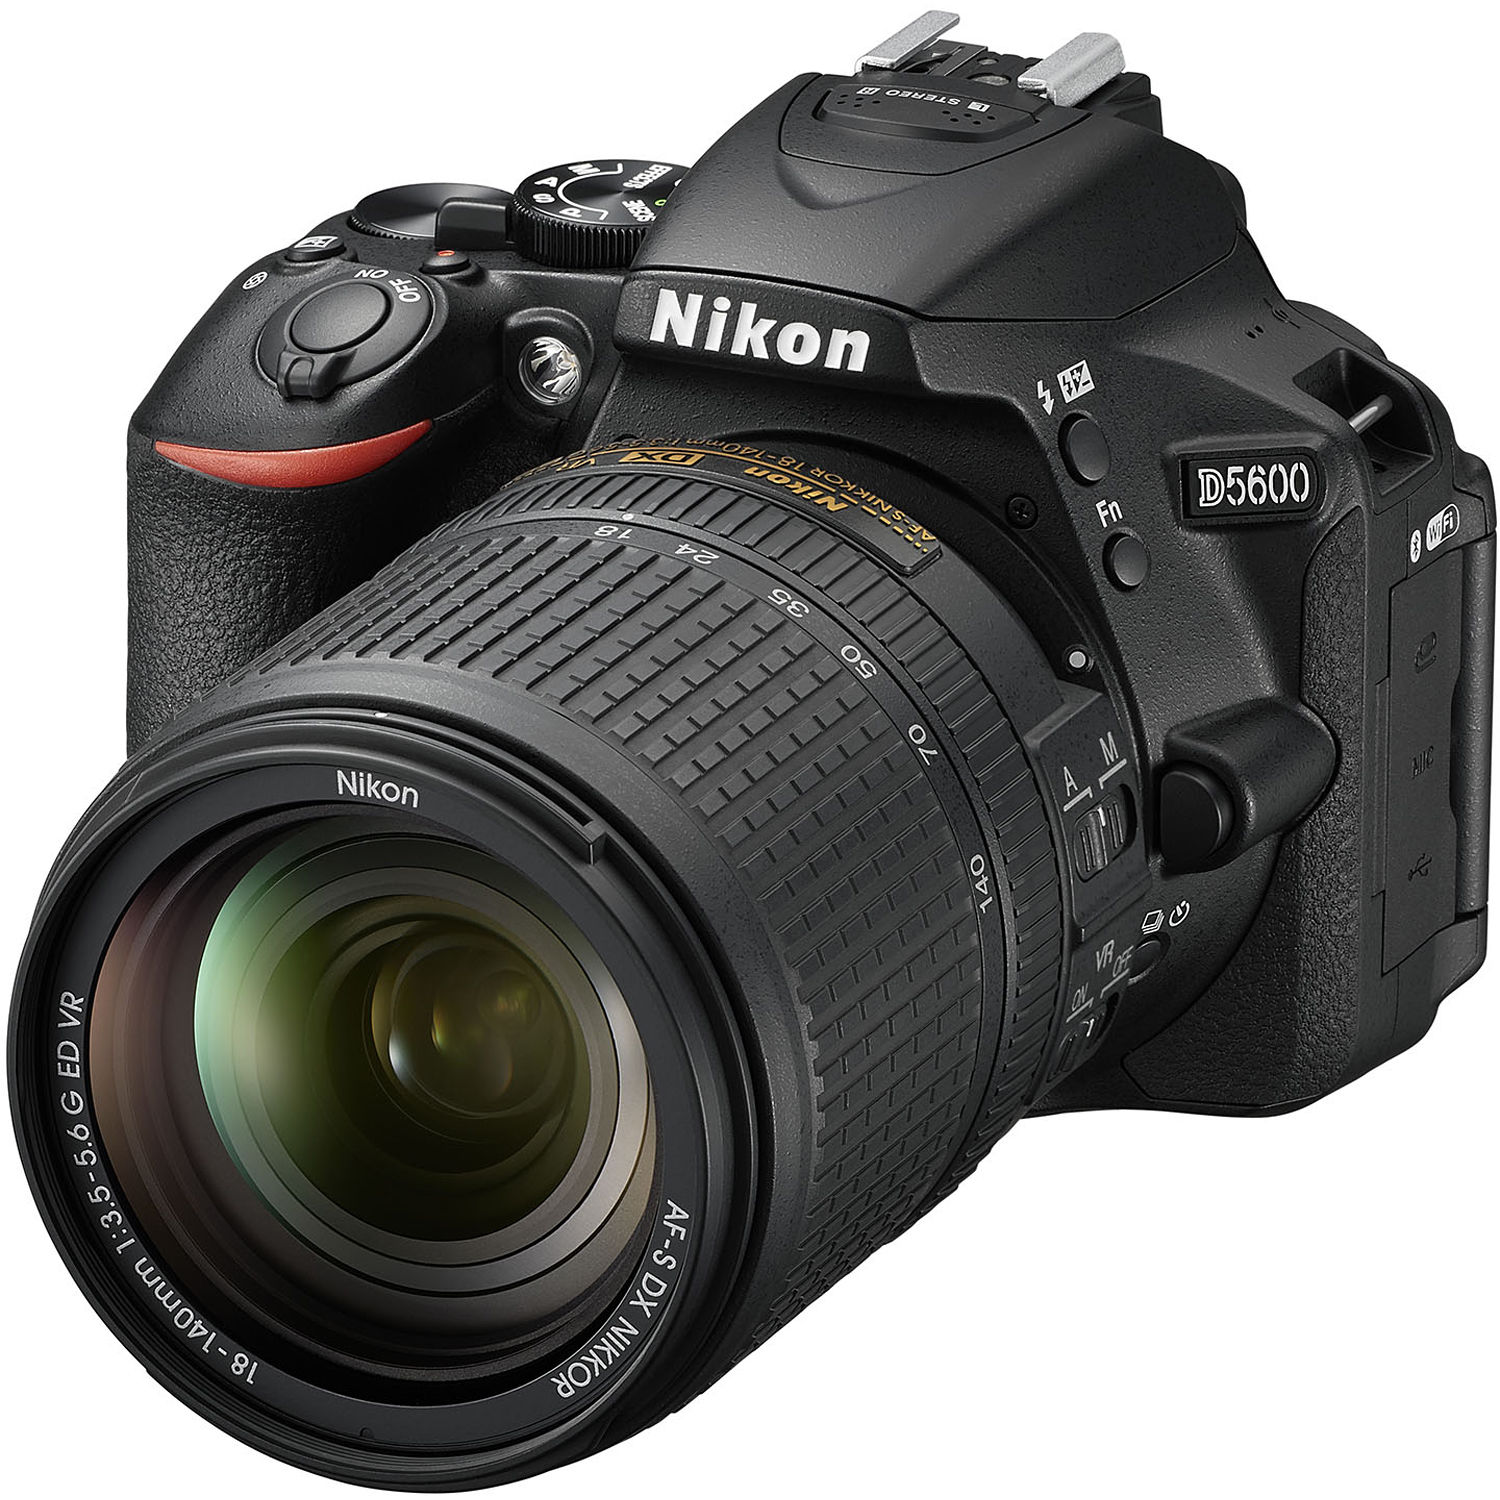 Nikon D5600 DSLR Camera with 18-140mm Lens 1577 B&H Photo Video